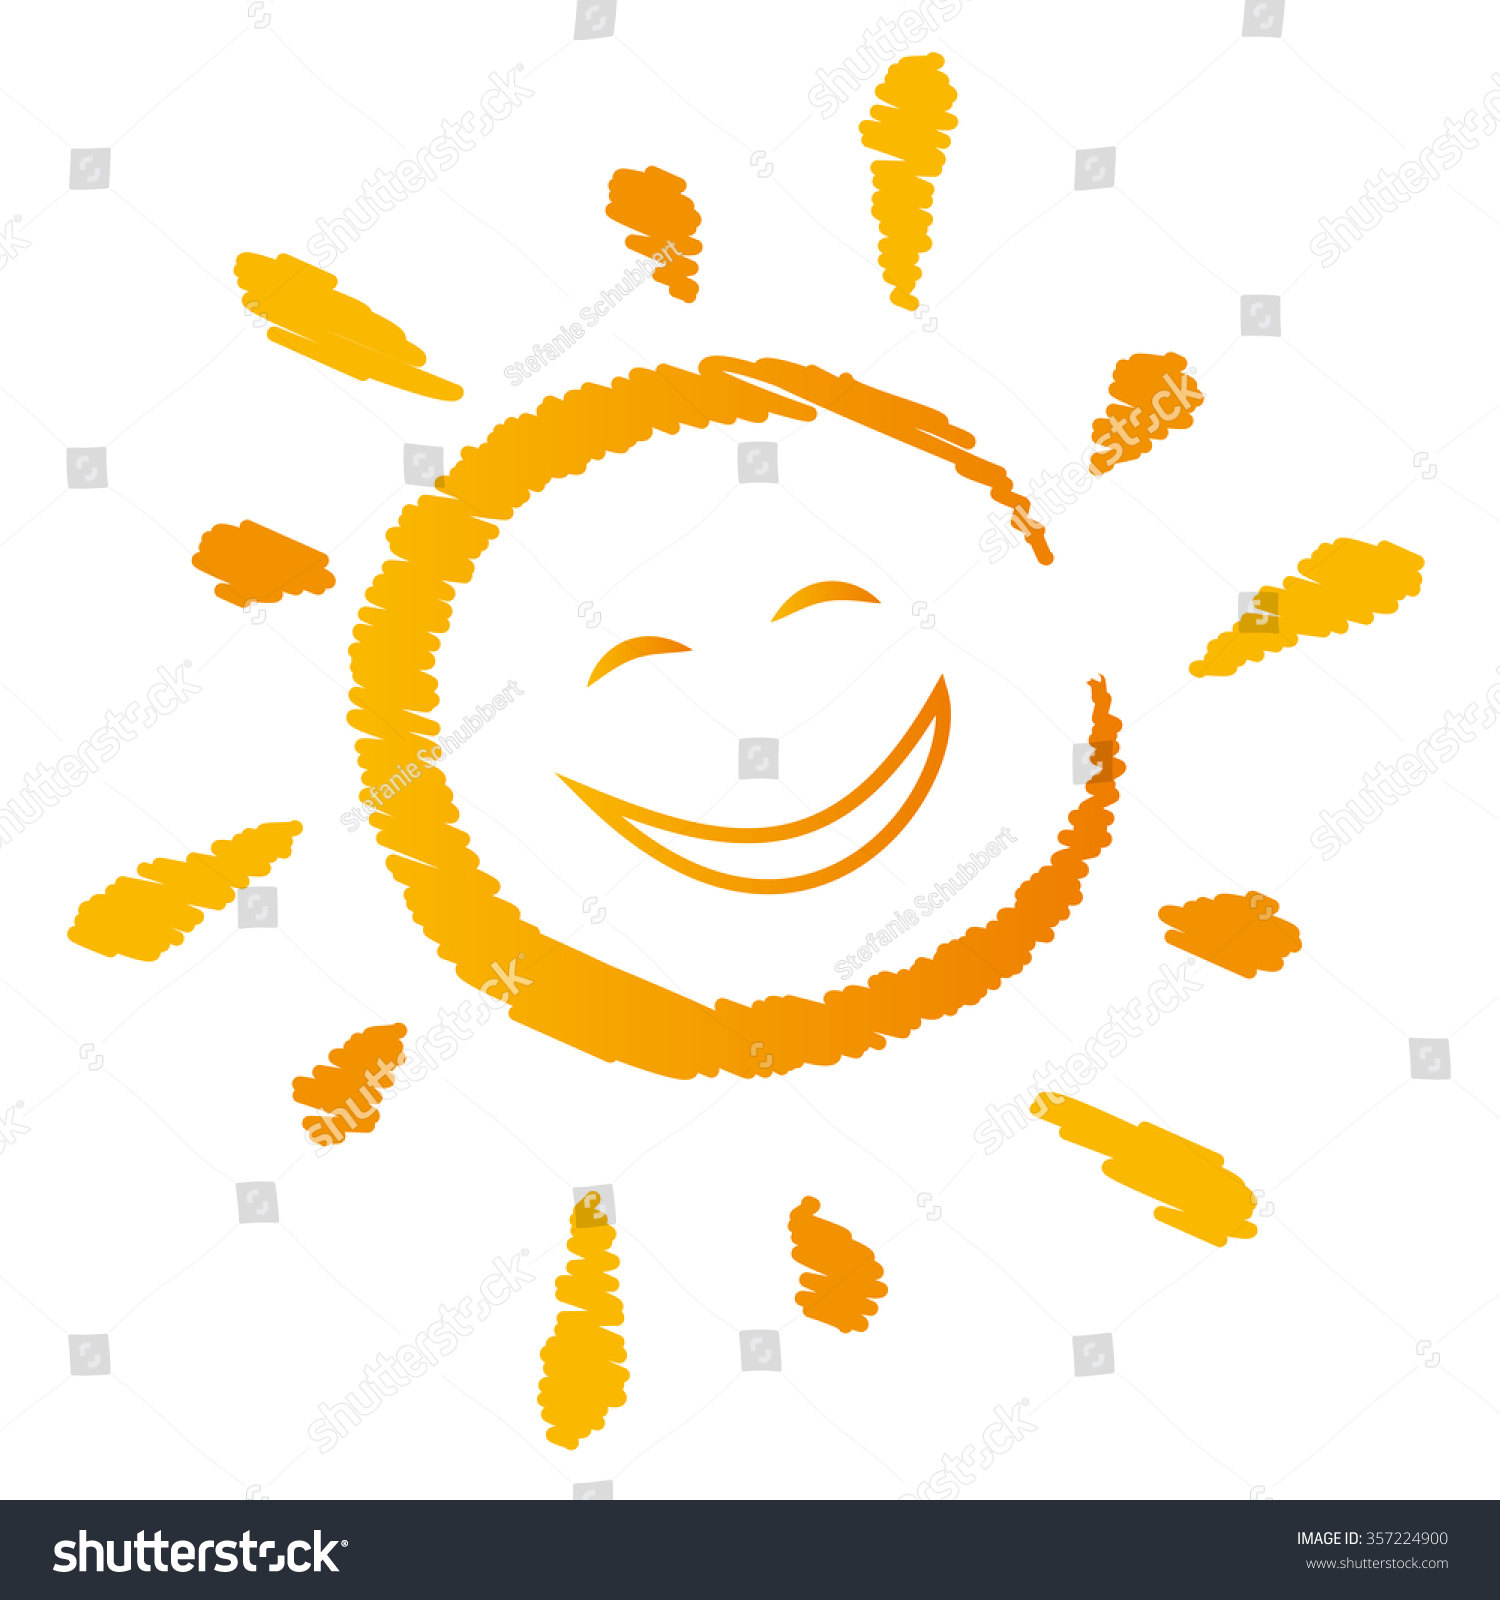 Smiling sun images - Smiling Sun Vector